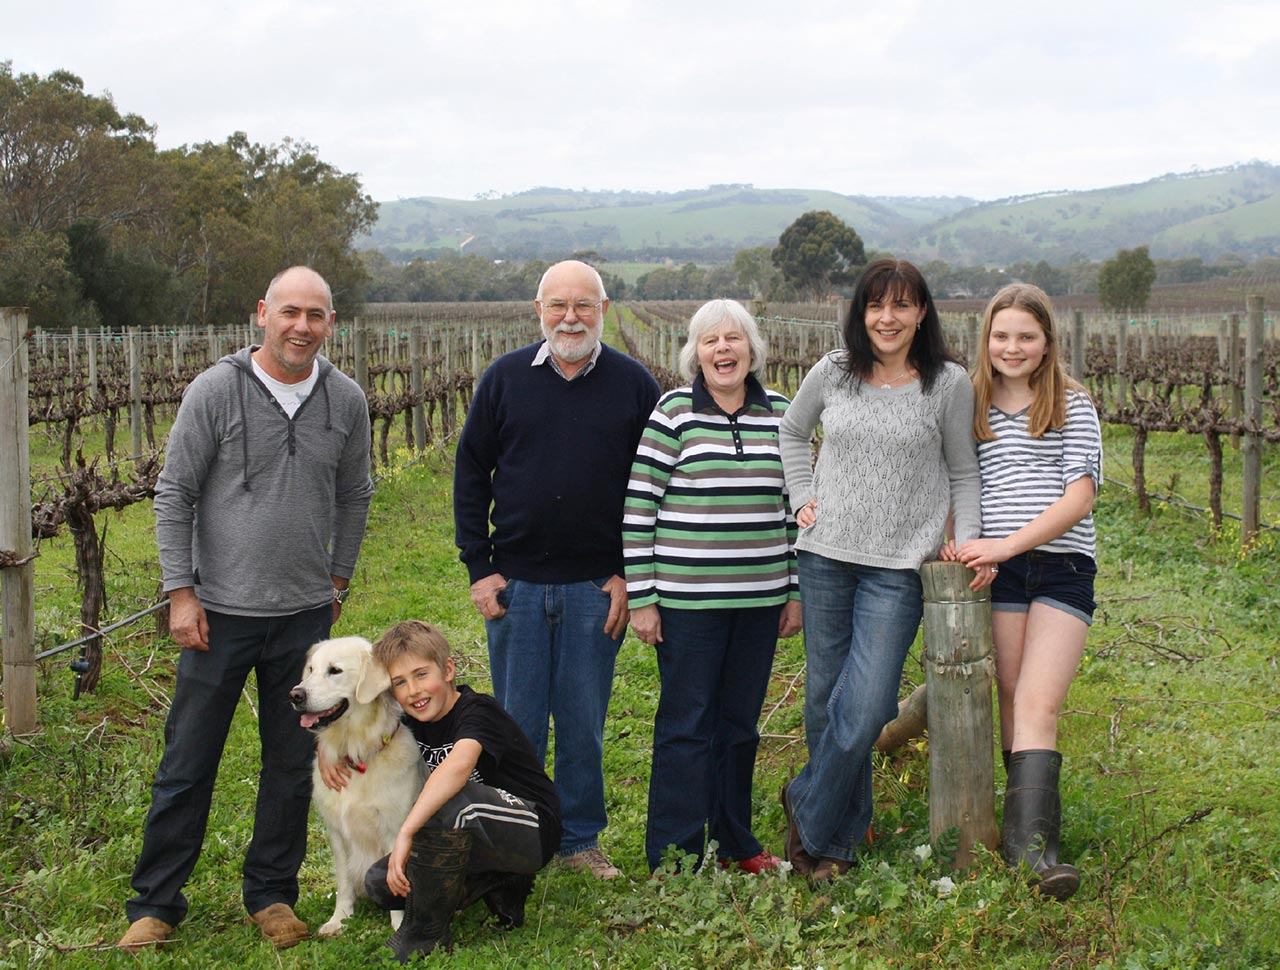 Walker's Run Wines family